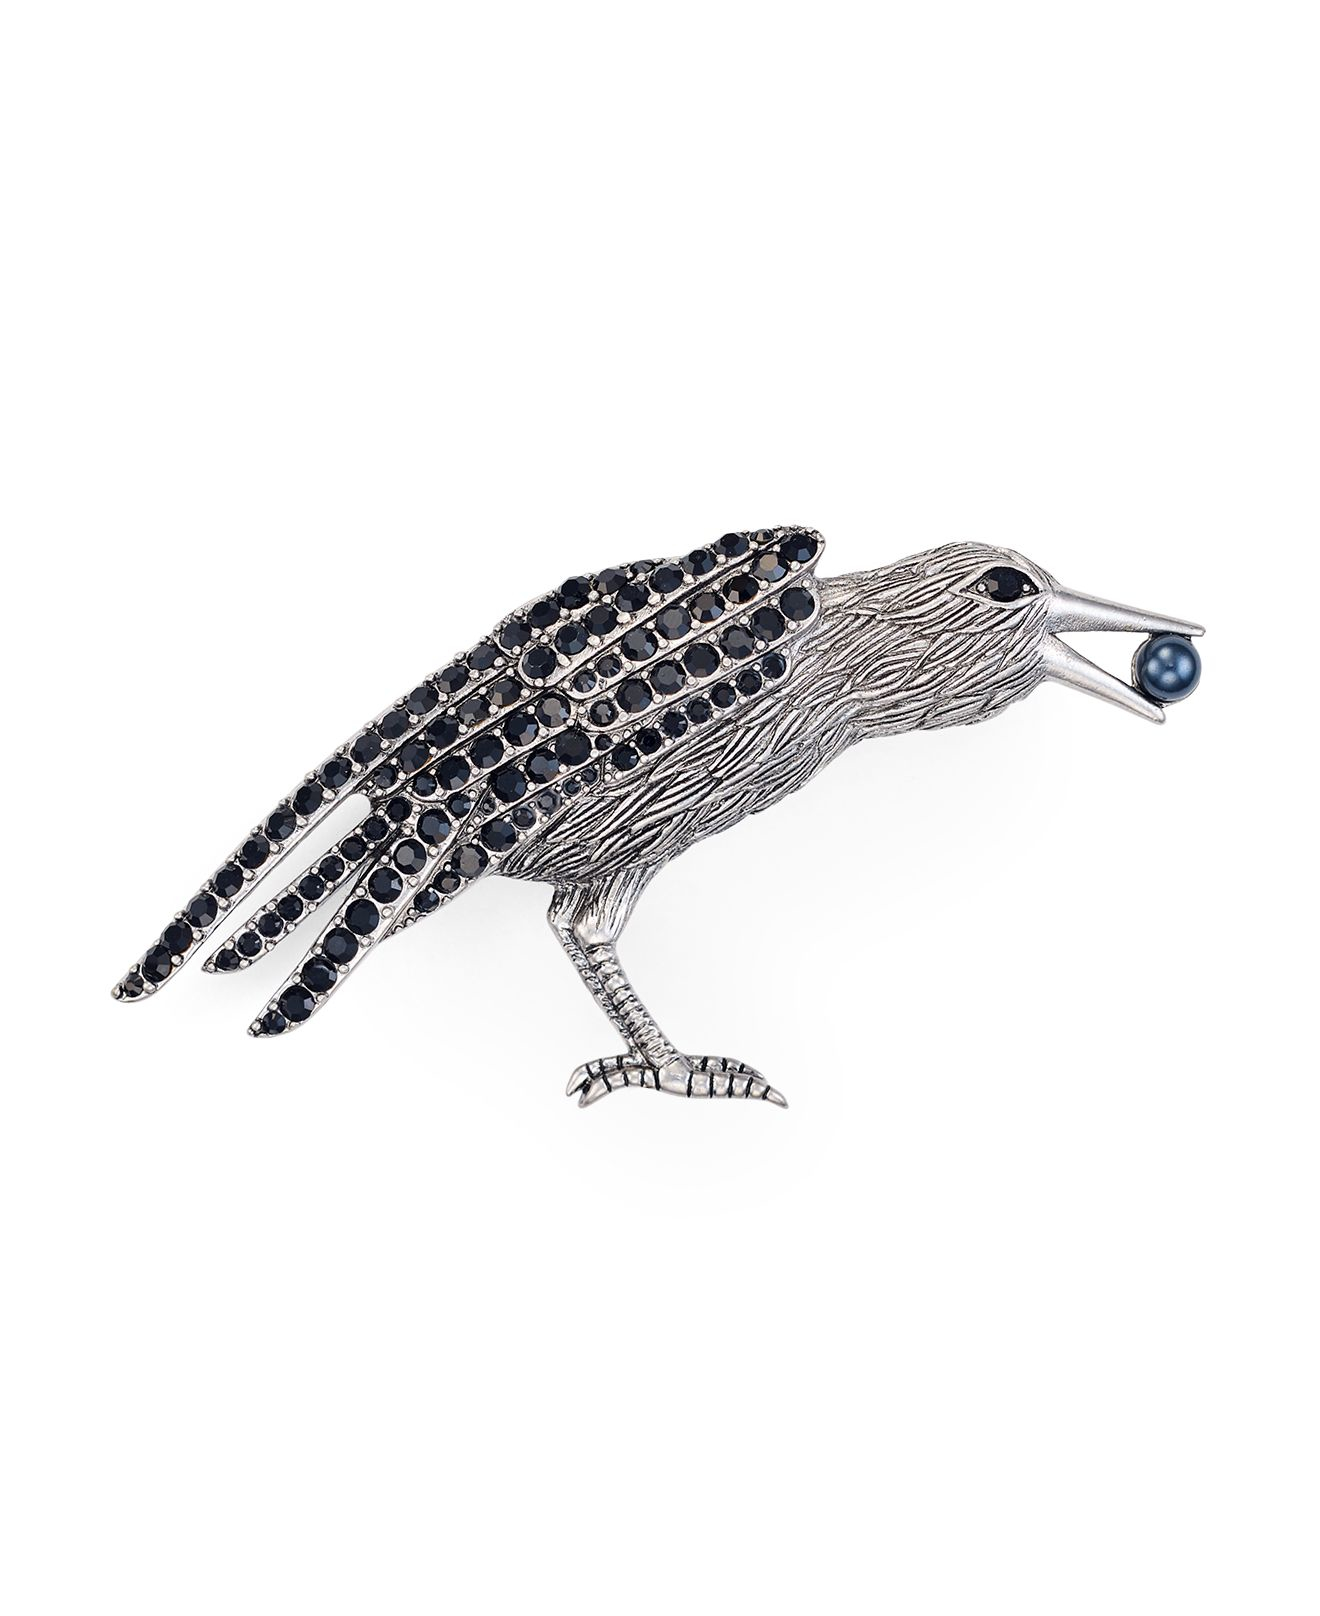 Marc Jacobs Crow Brooch Silverblack furthermore Raffia Disk Drop Clip On Earrings further 3 also Elie Saab likewise Xxxtentacion Predict Hed Die Young Watch Eery Video Taken Fatal Shooting. on oscar de la renta black and gold watch